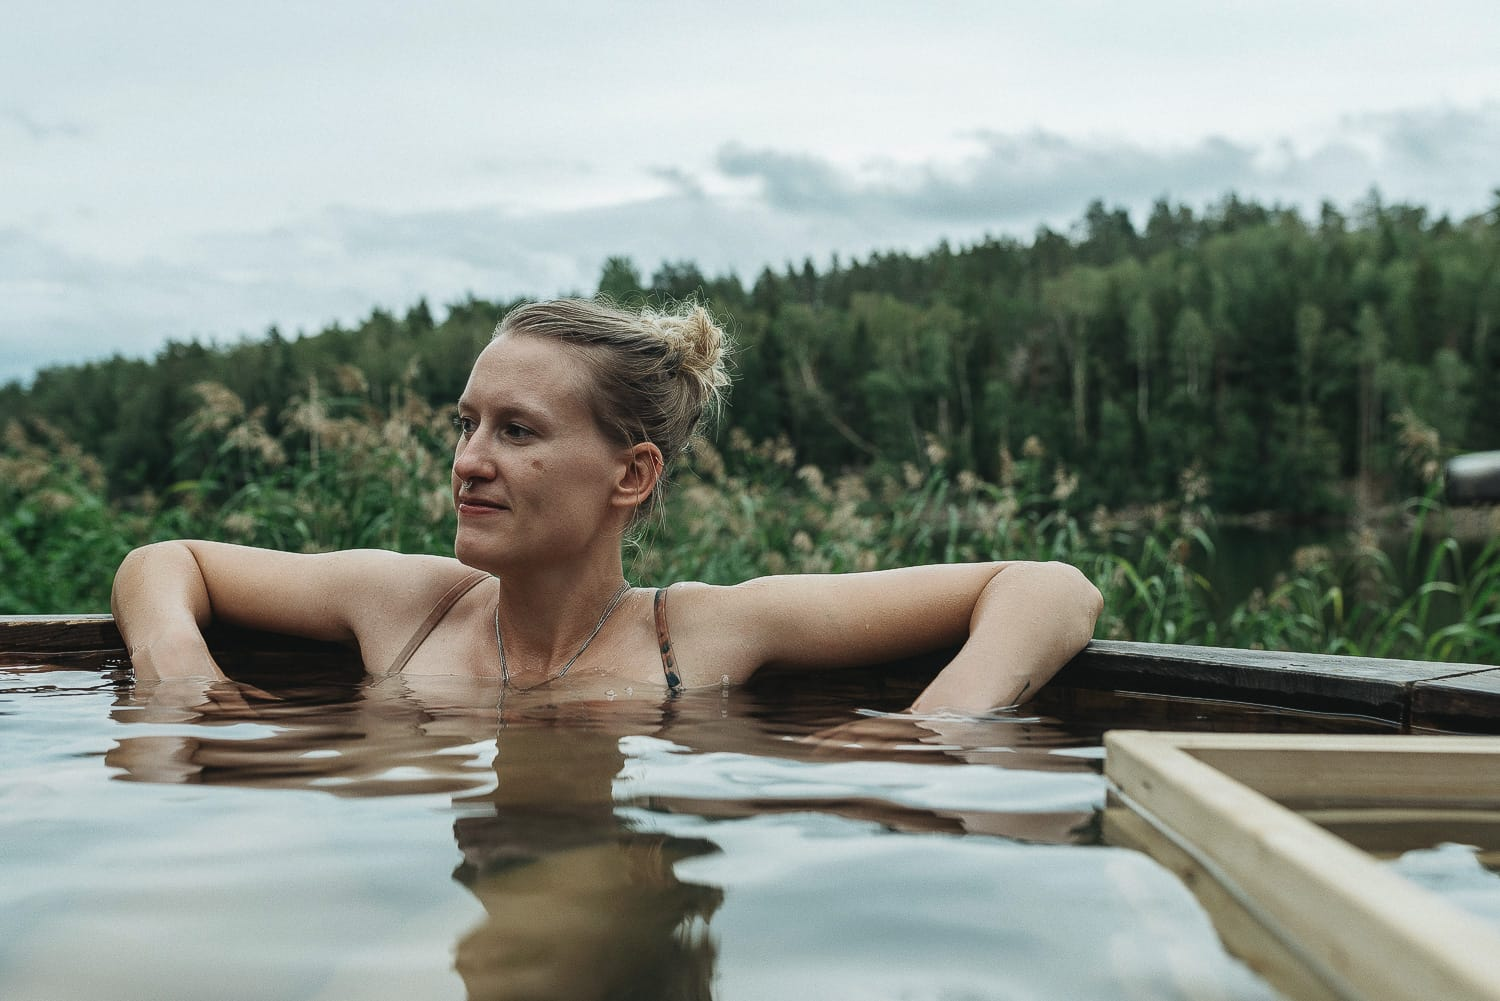 woman in an outdoor hot tub